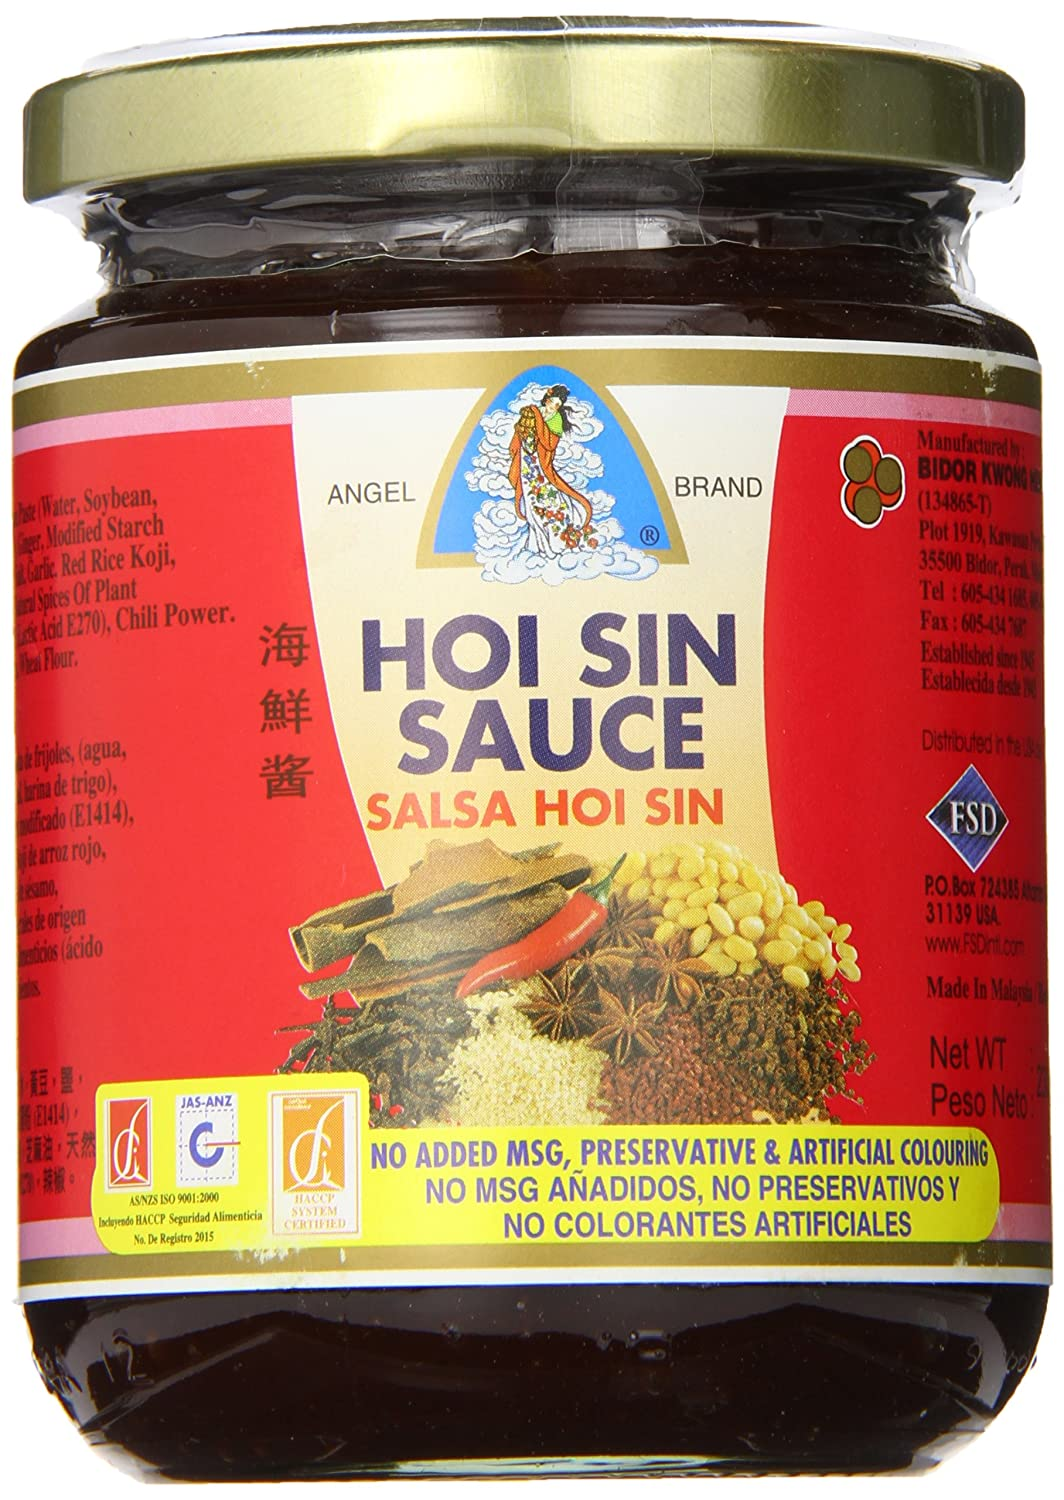 Amazon.com : Angel Brand Hoi Sin Sauce, 8.1 Ounce (Pack of 12) : Barbecue Sauces : Grocery & Gourmet Food